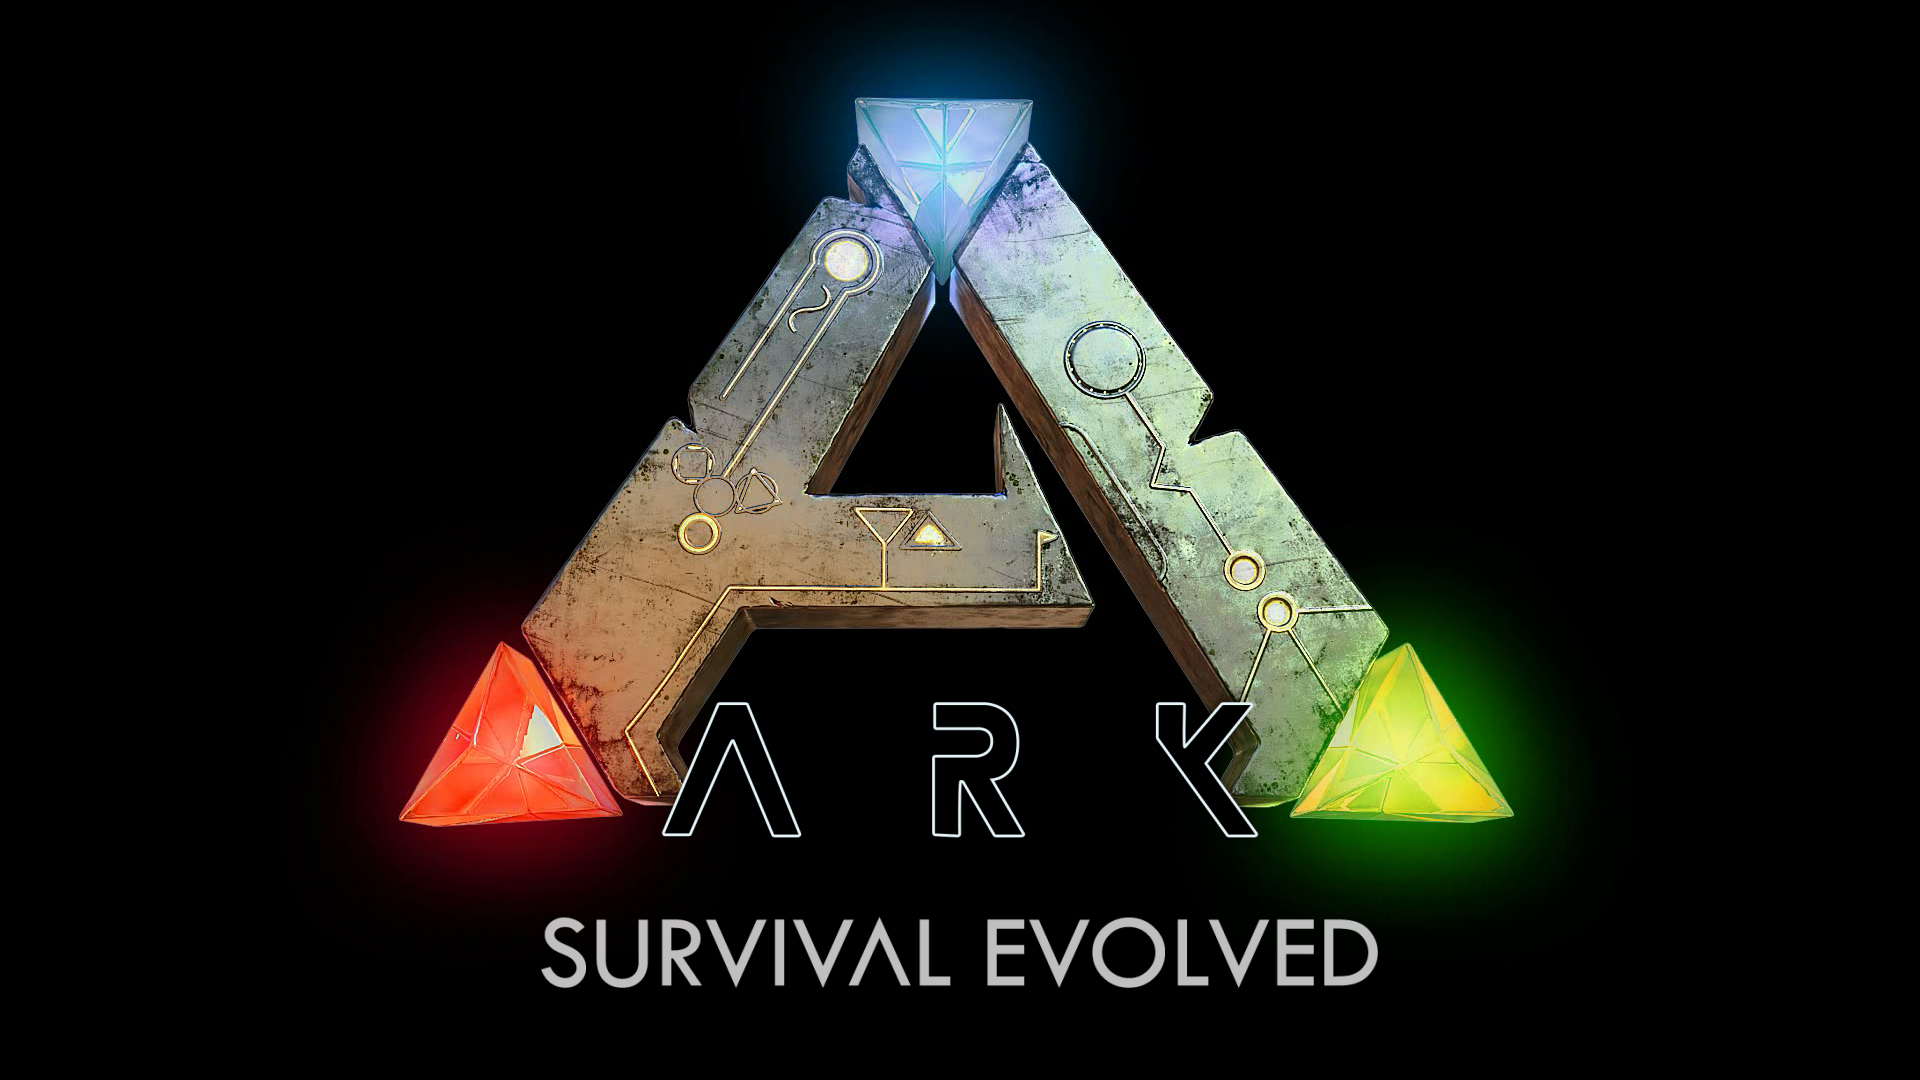 Ark survival evolved ps4 update 164 adds dino tlc xbox due soon ark survival evolved ps4 update 164 adds dino tlc xbox due soon player malvernweather Gallery